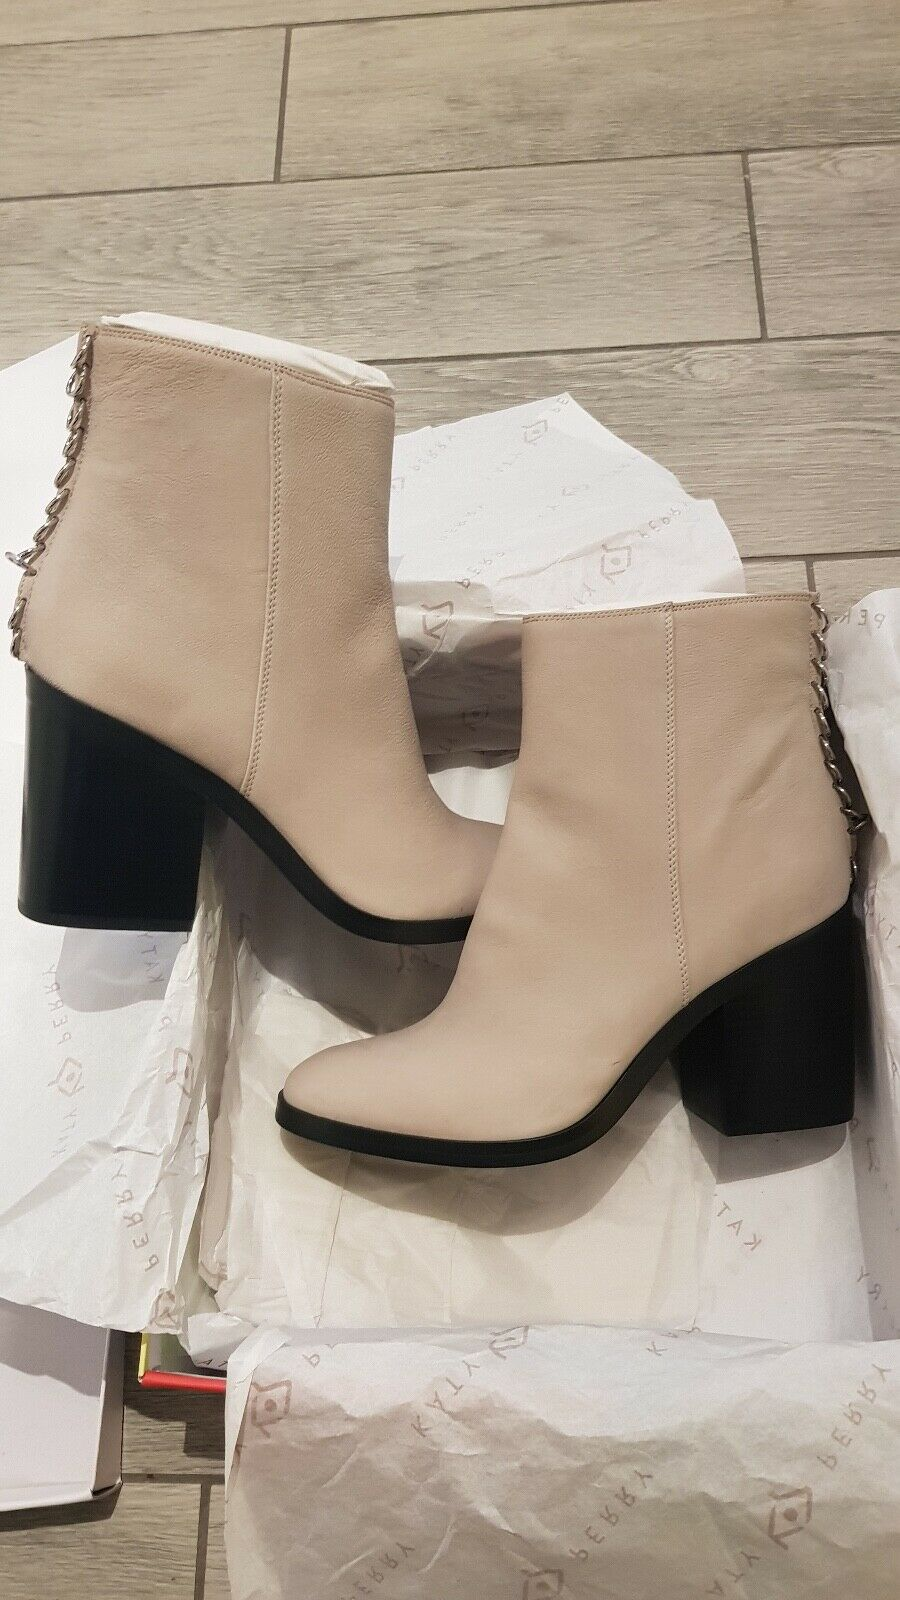 Katy Perry Grey Cream leather boots  UK size 7  US 9.5